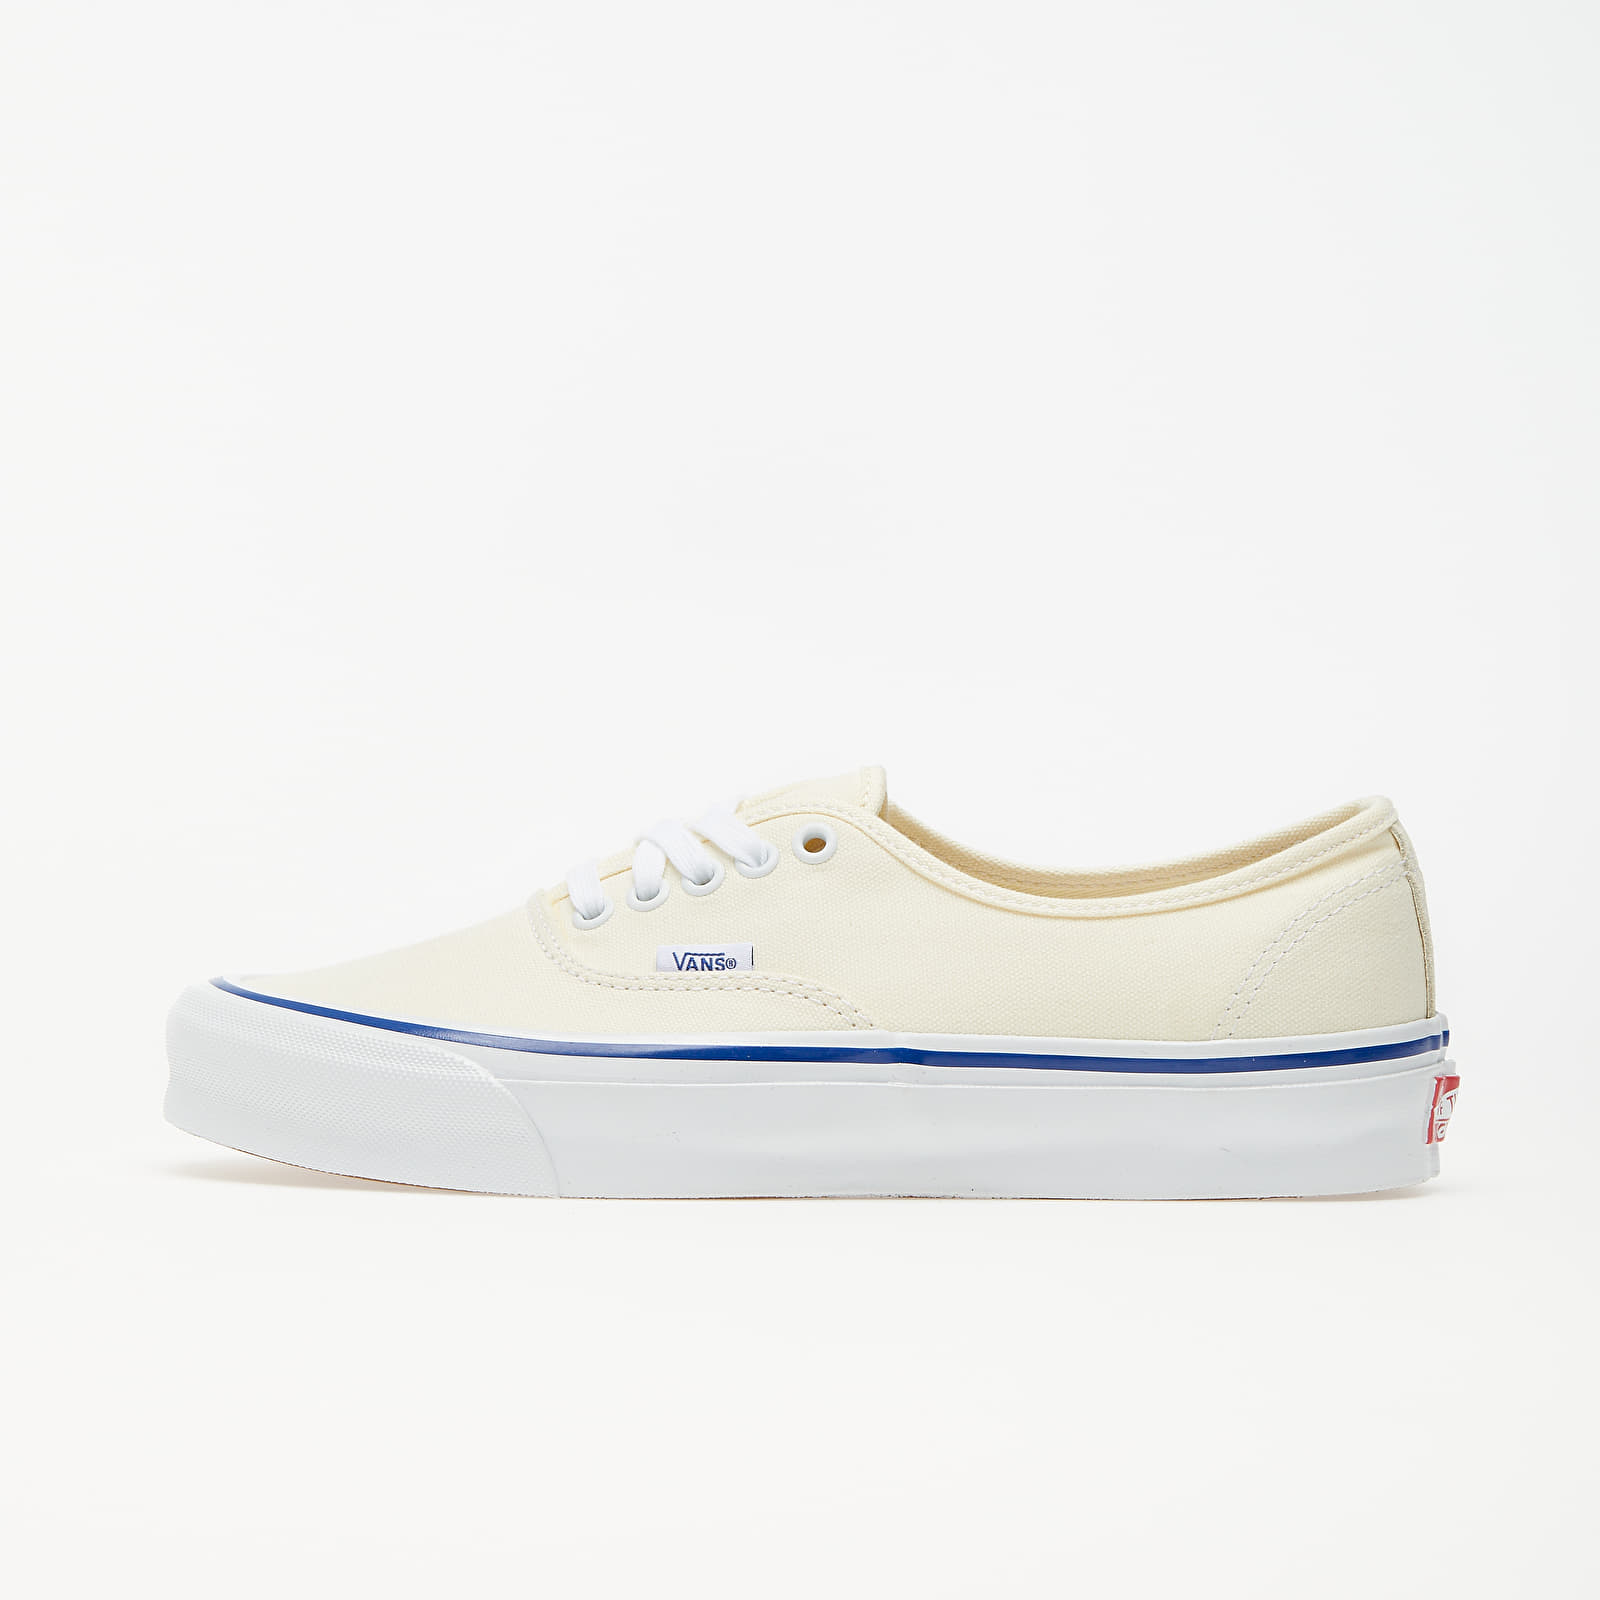 Мужская обувь Vans OG Authentic LX (Canvas) Classic White